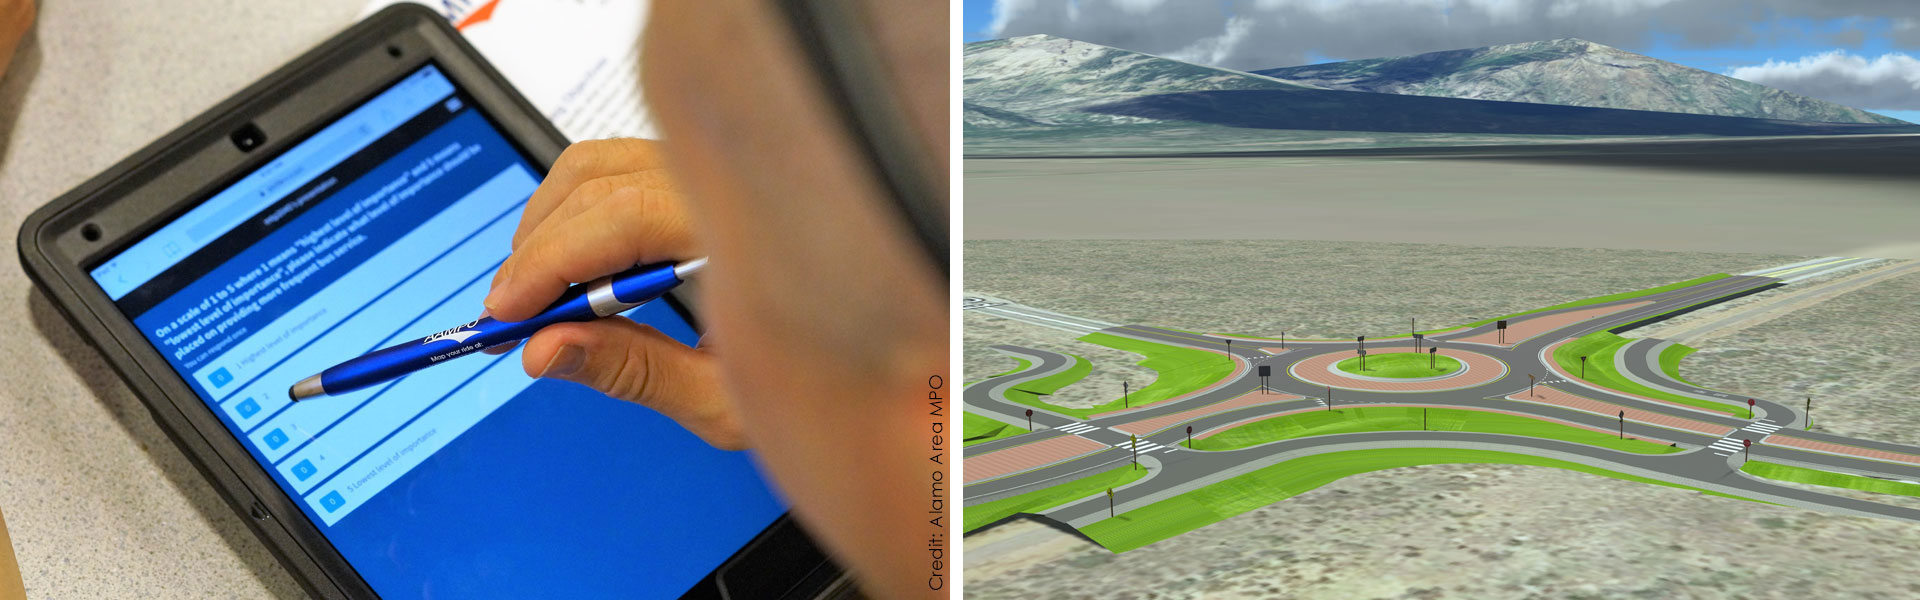 Photo on left of person using a tablet. Visualization of a roundabout on right.